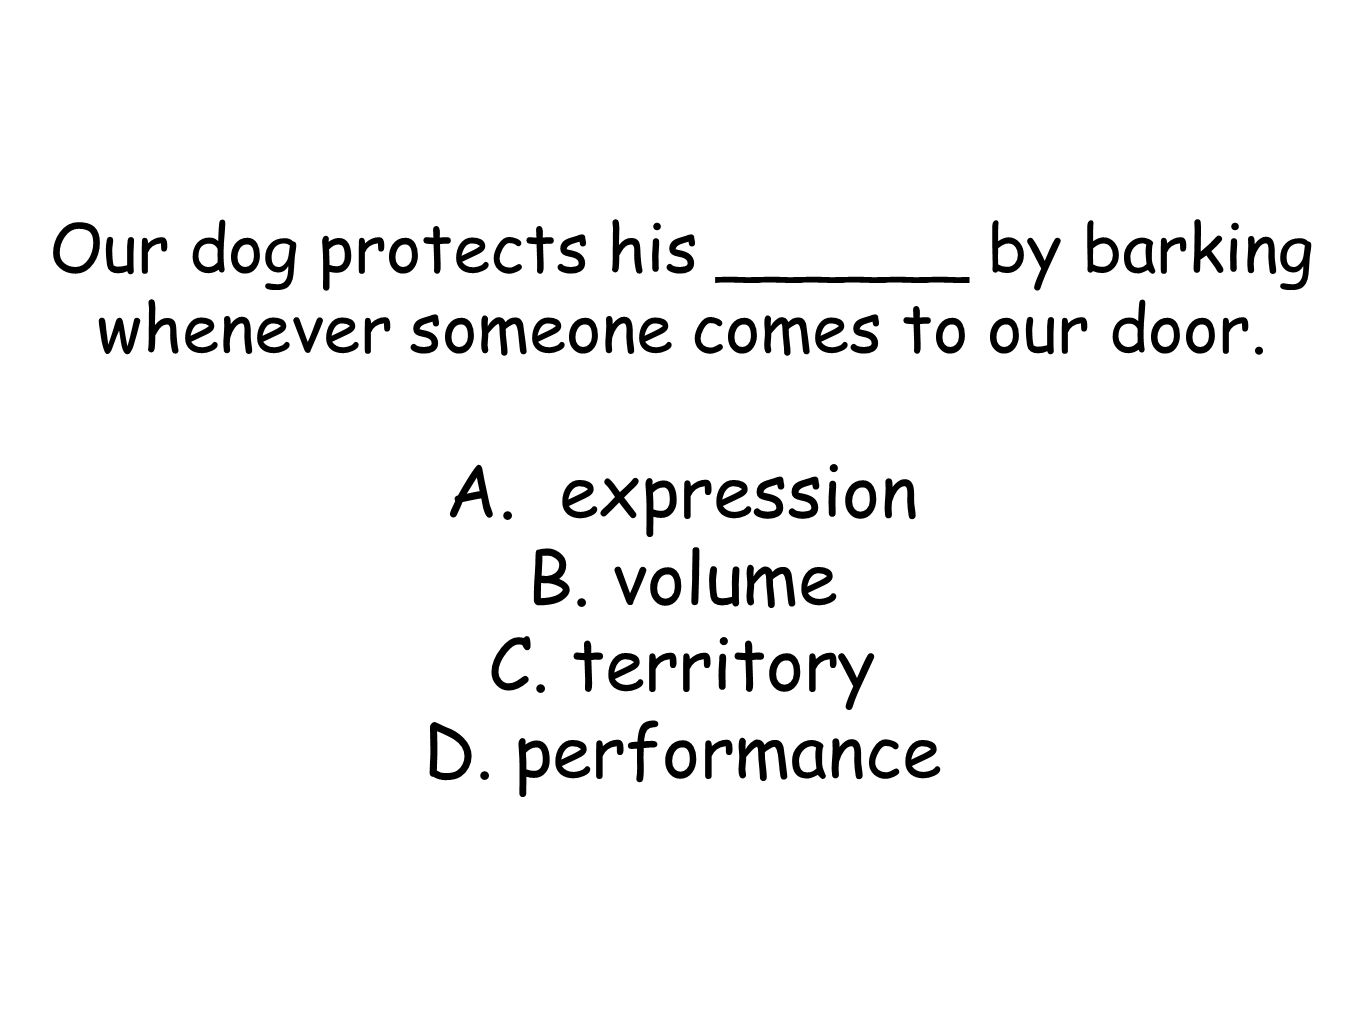 Our dog protects his ______ by barking whenever someone comes to our door.